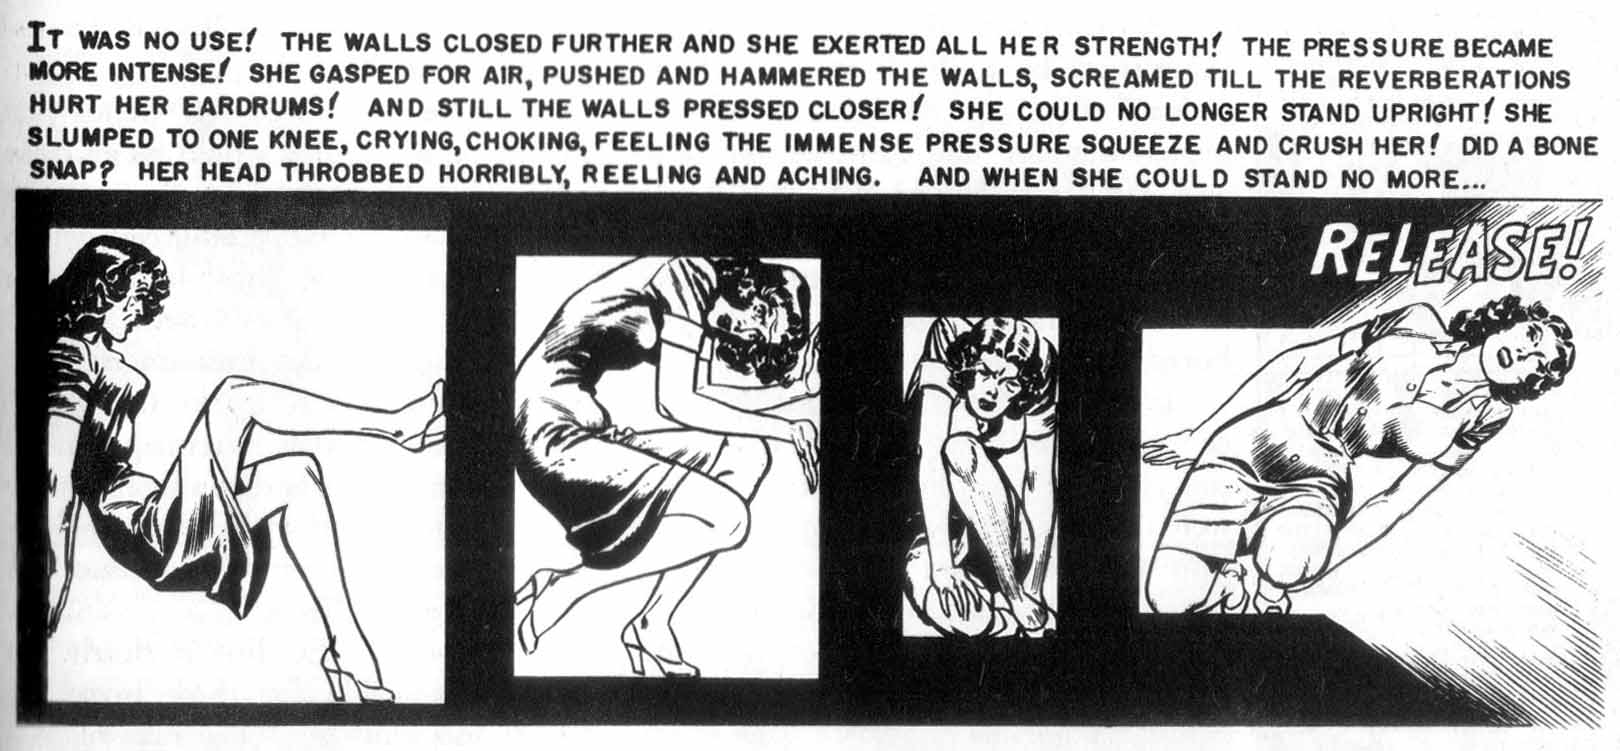 ec comics and the chimera of memory part of the hooded in tom devlin s abandoned essay concerning the legacy of ec tcj 238 the benefits of a more cartoony style were touted as a superior form of expression